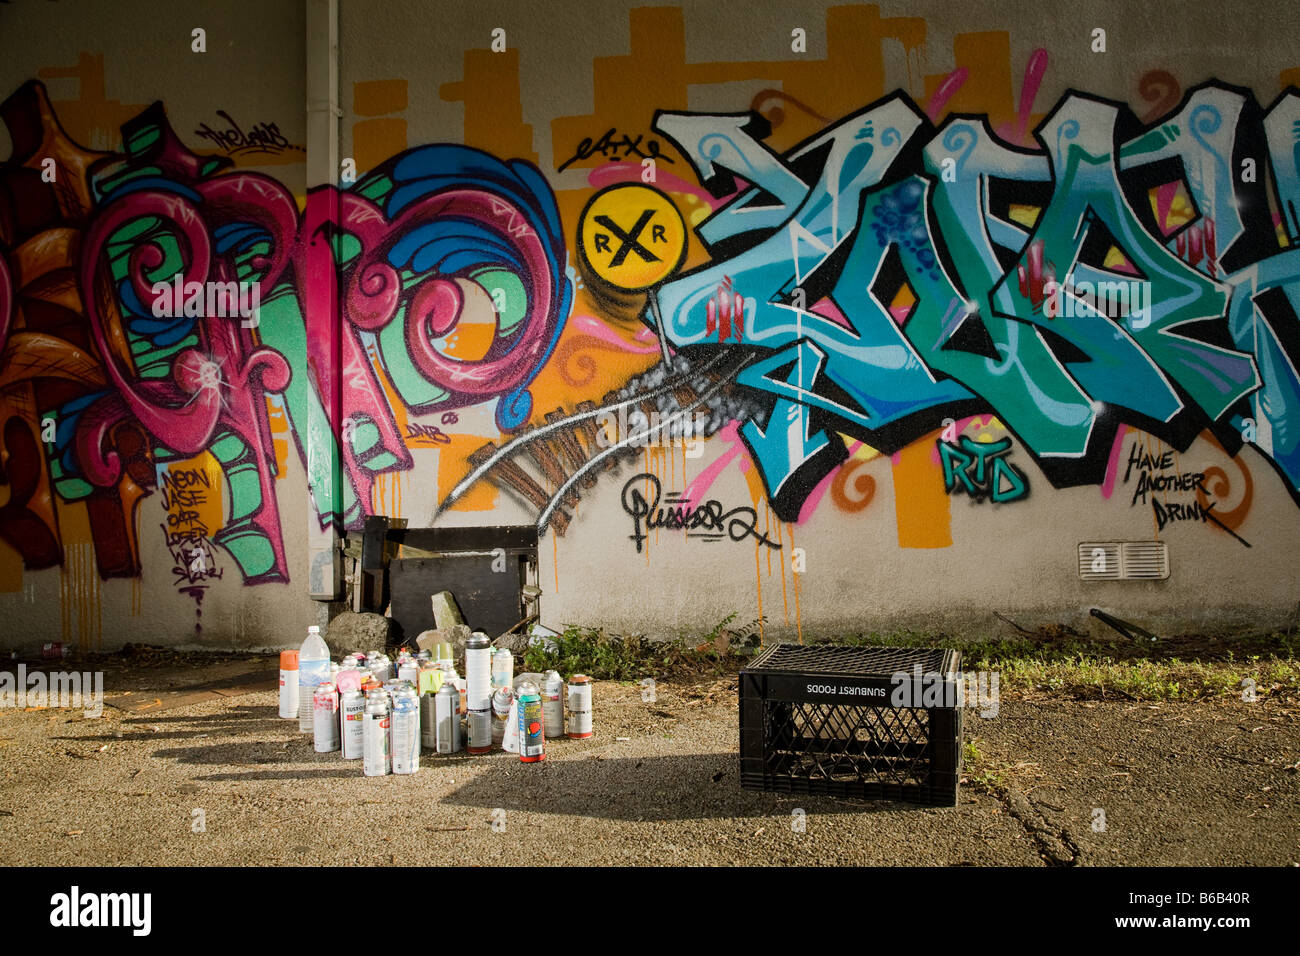 Graffiti art and Spray cans in an Alley - Stock Image